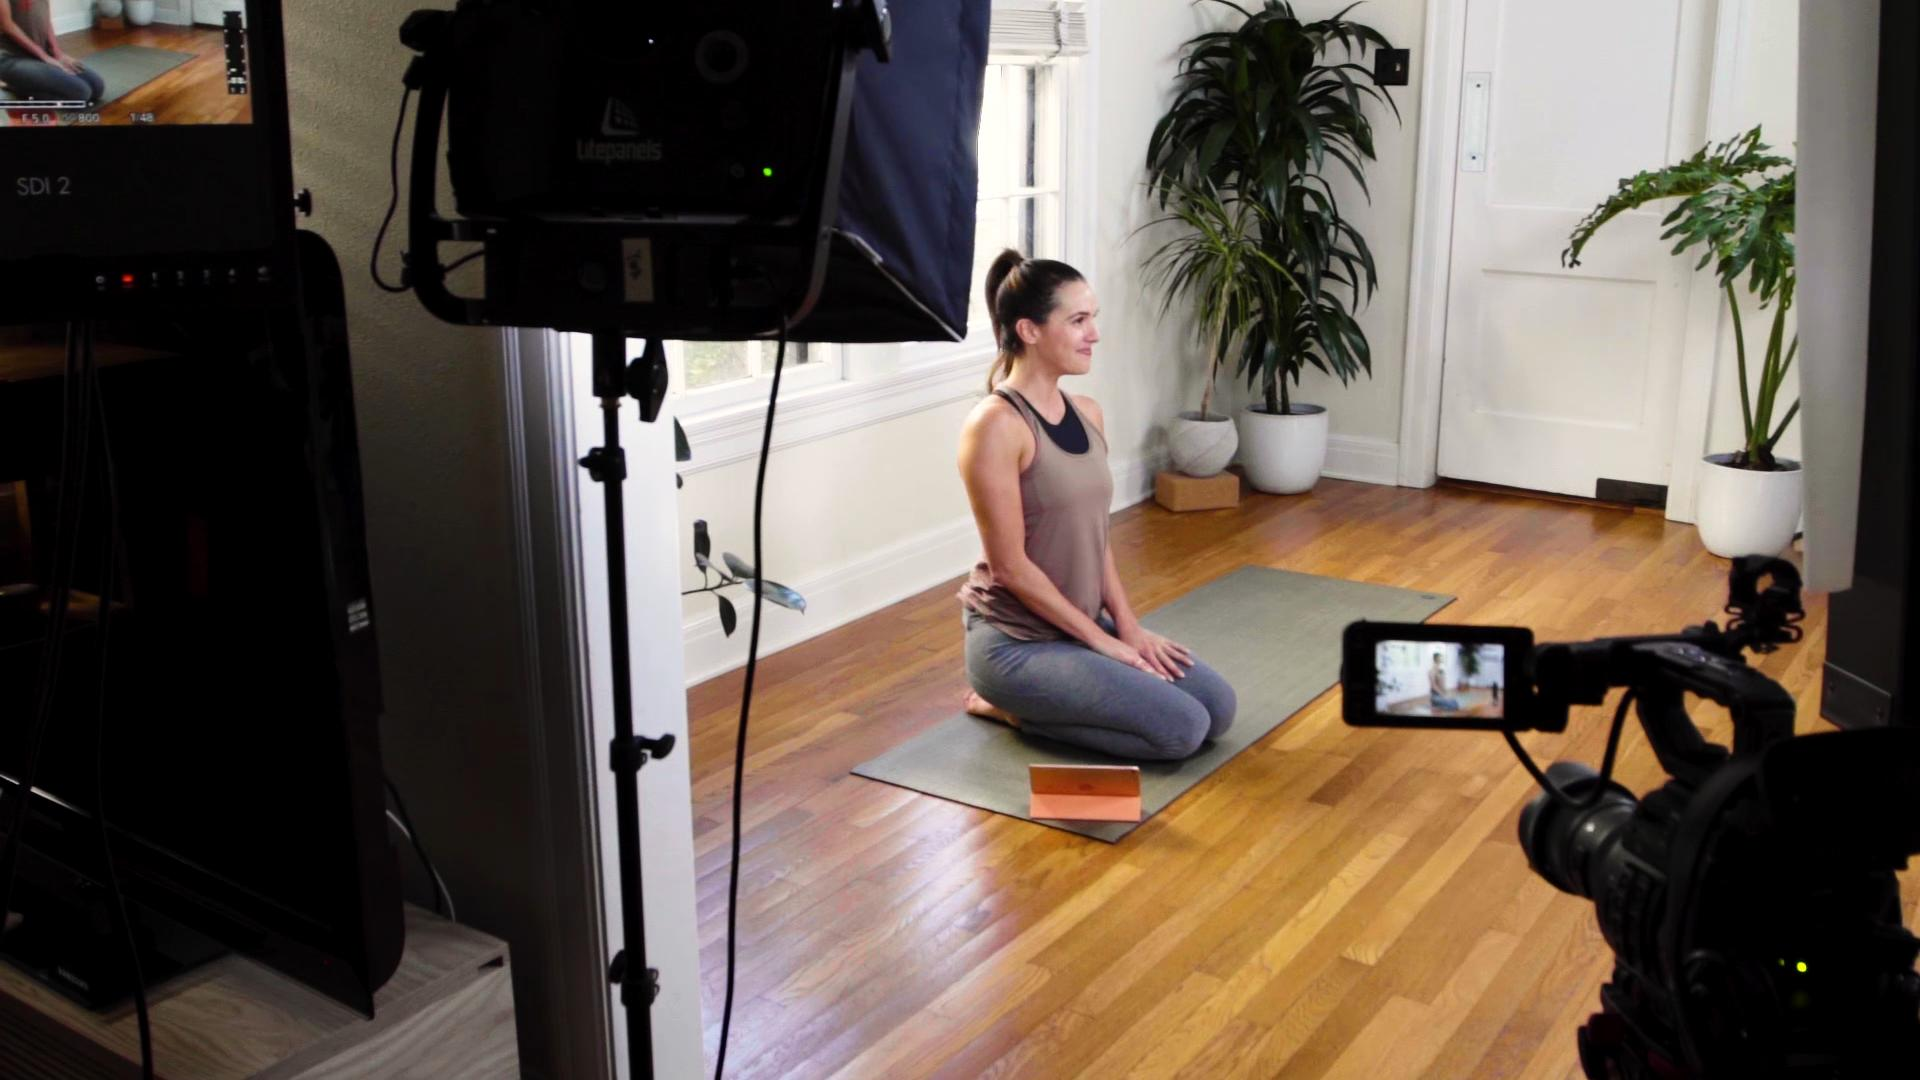 Austin Youtube Yoga Star Adriene Mishler On Caring For Your Whole Self During Isolation Kxan Austin